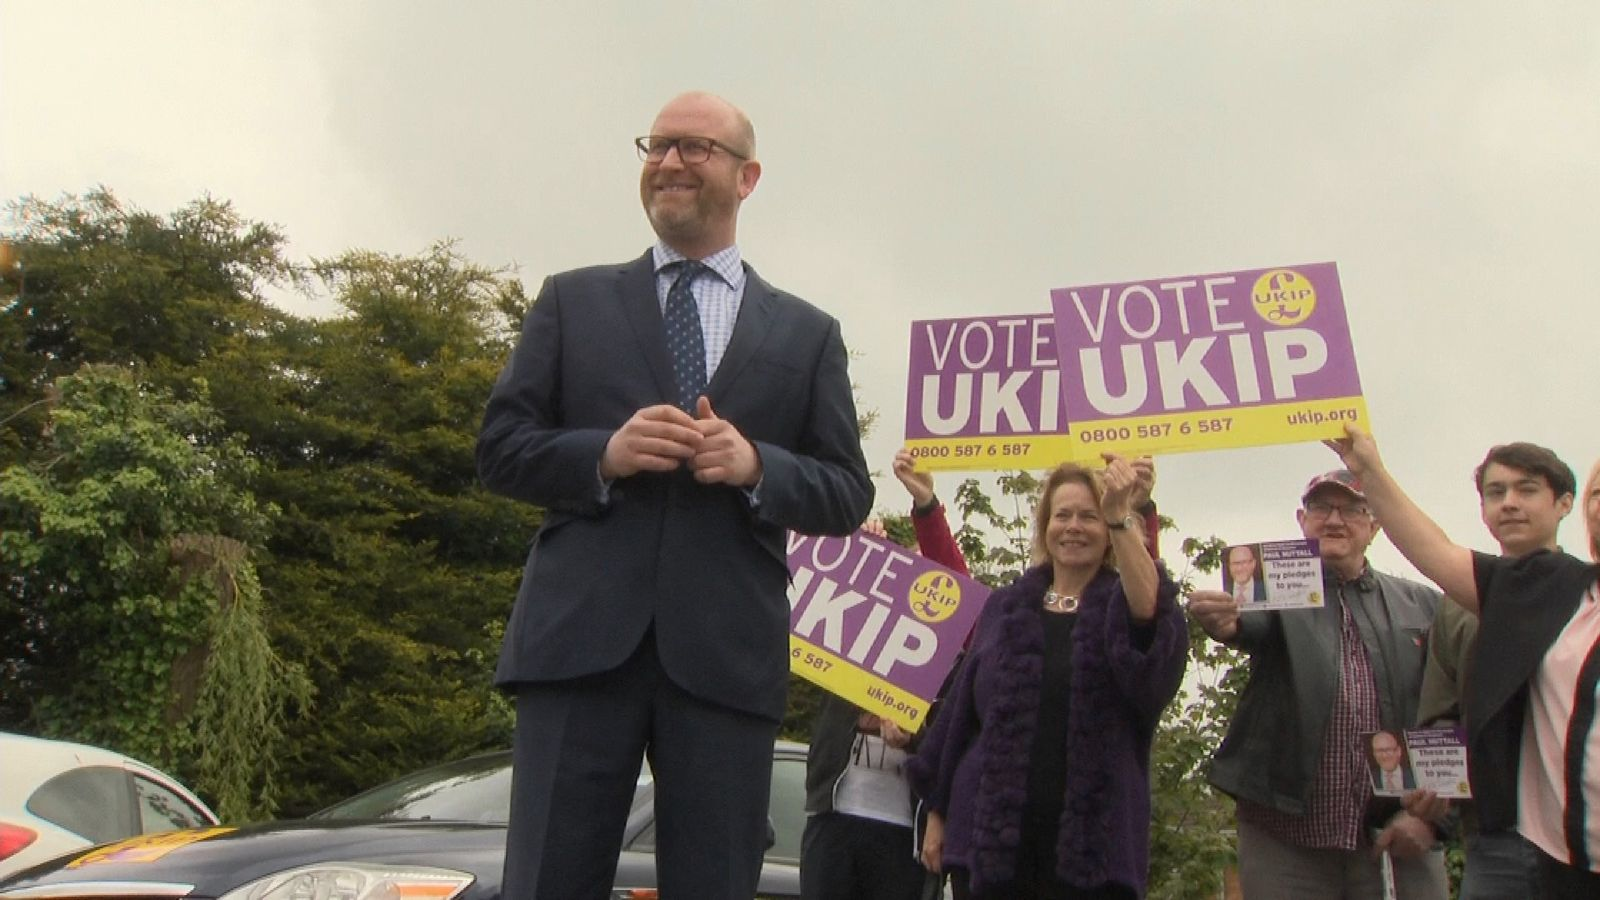 UKIP leader Paul Nuttall campaigning in Lincolnshire after his party was wiped out in the English local elections.